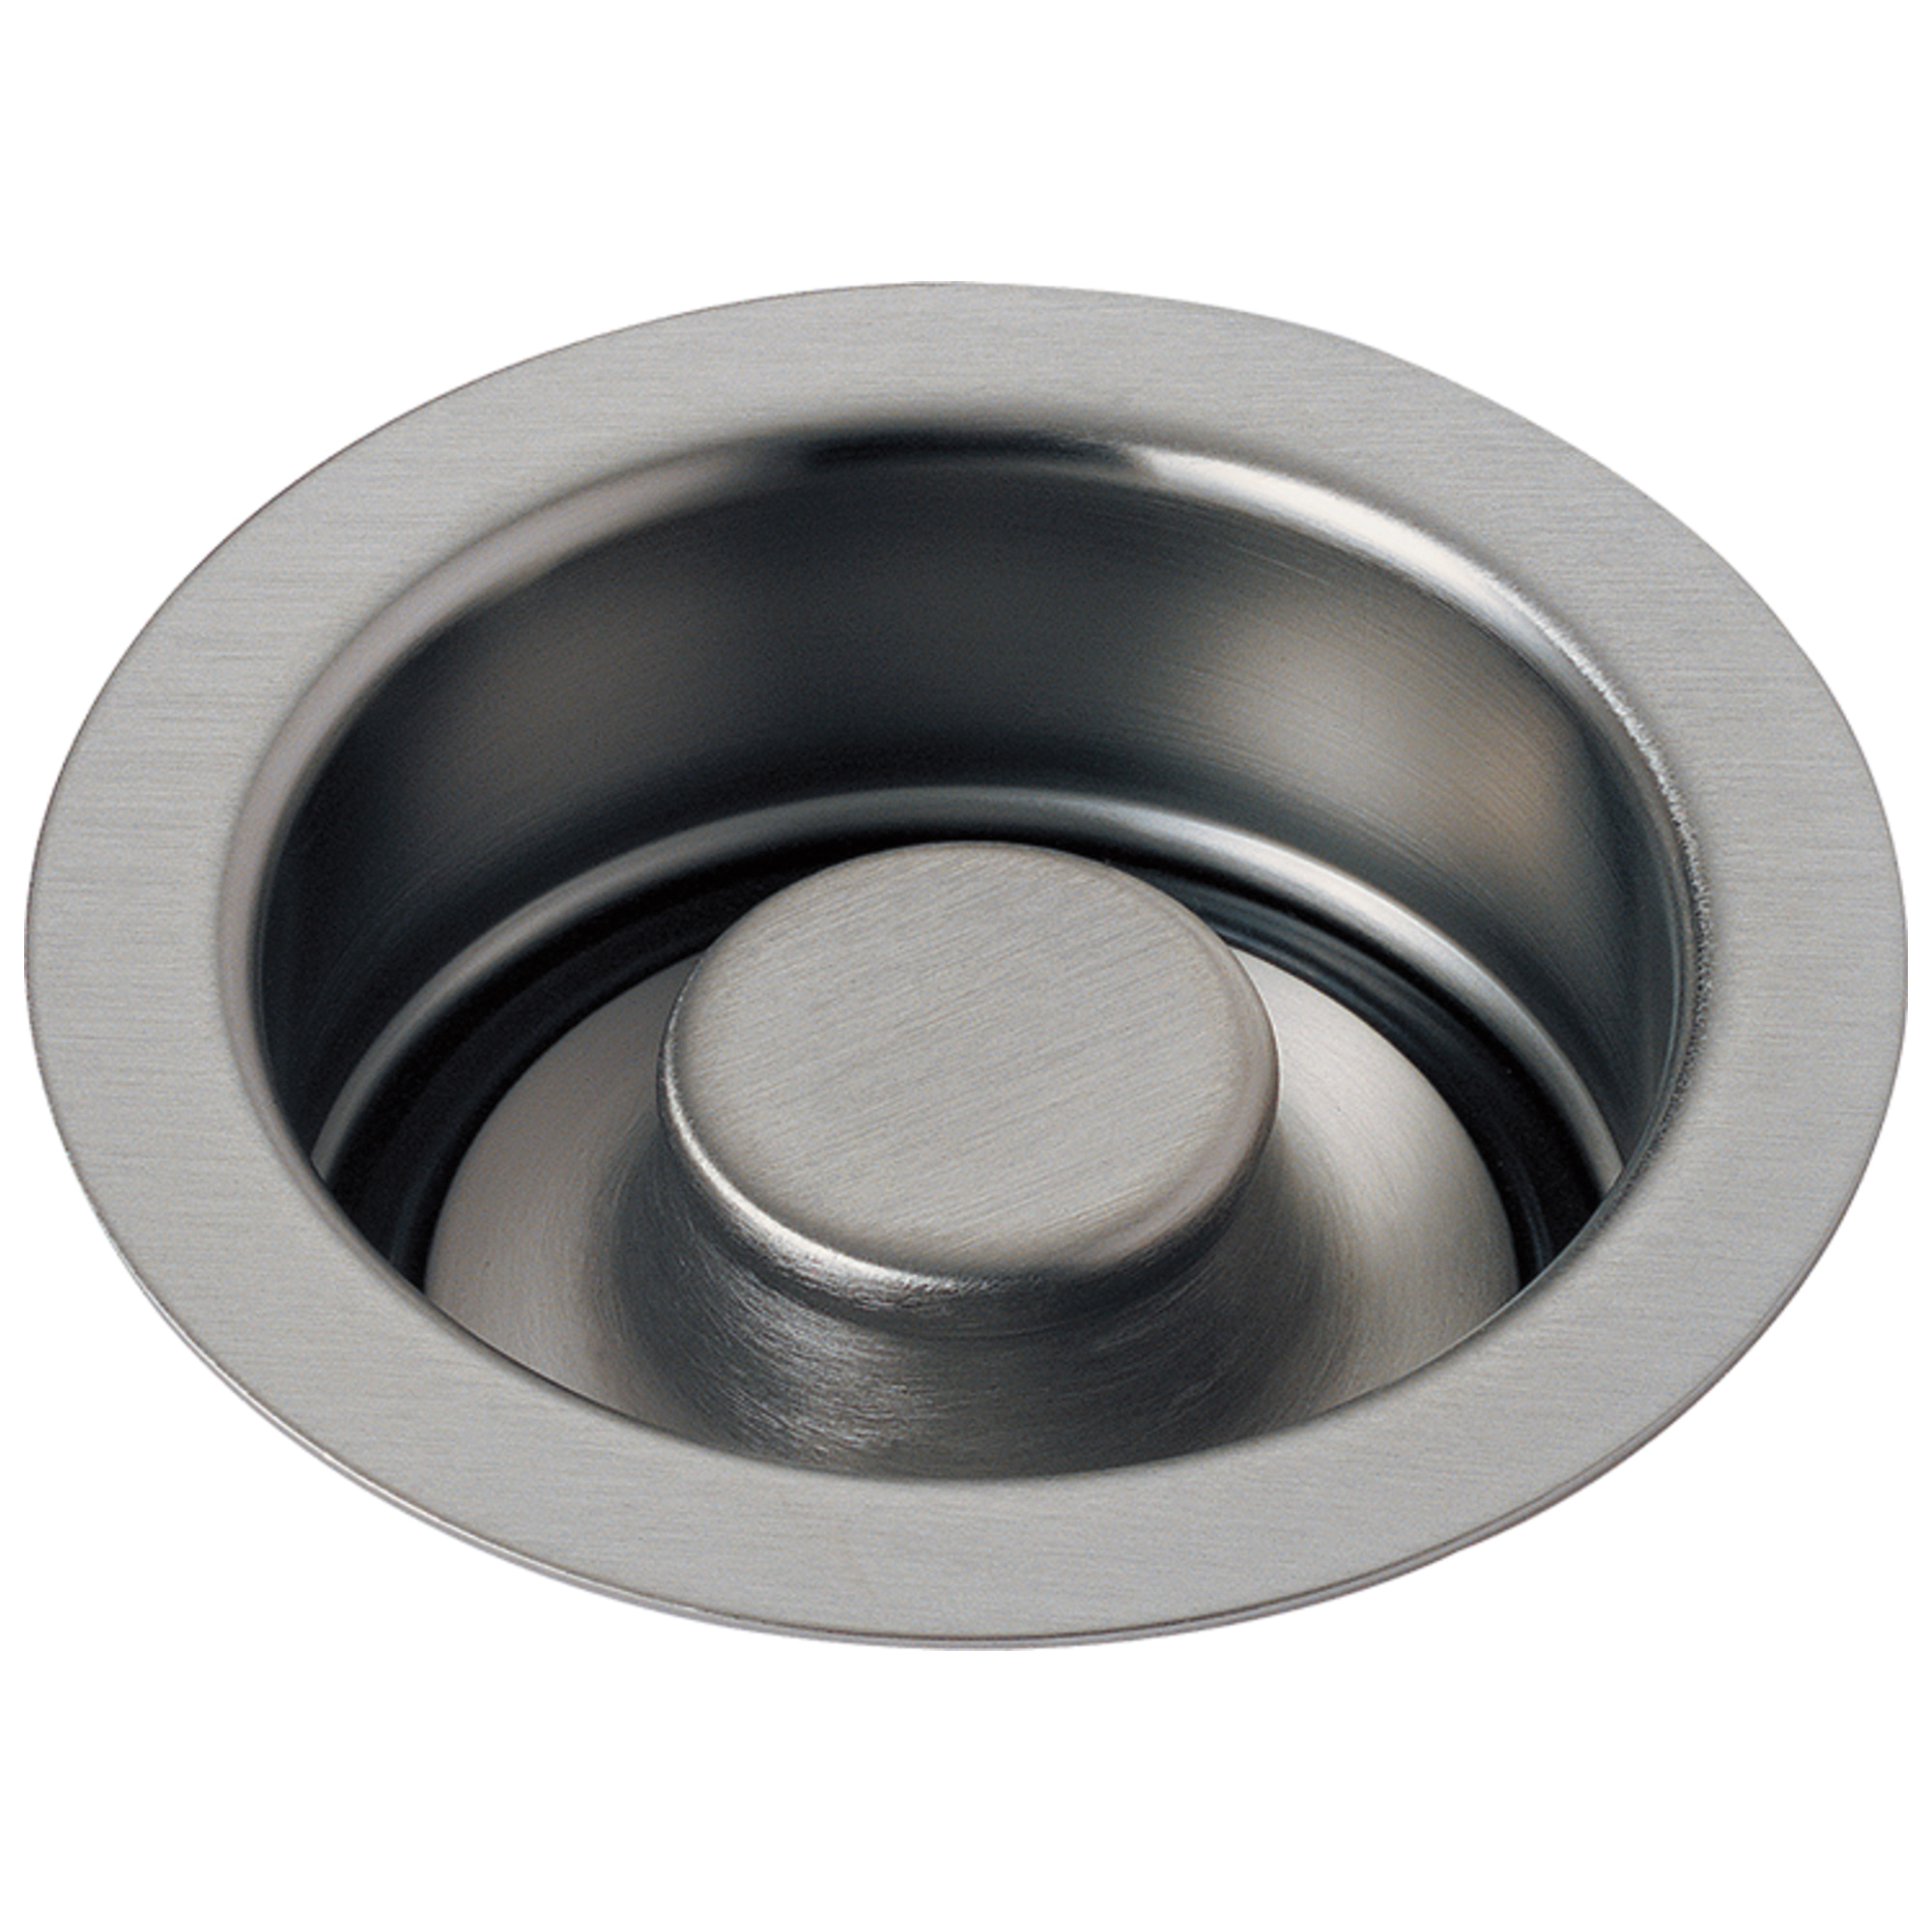 DELTA® 72030-SS Disposal and Flange Stopper, For Use With Kitchen Sink, Brass, Brilliance® Stainless Steel, Import